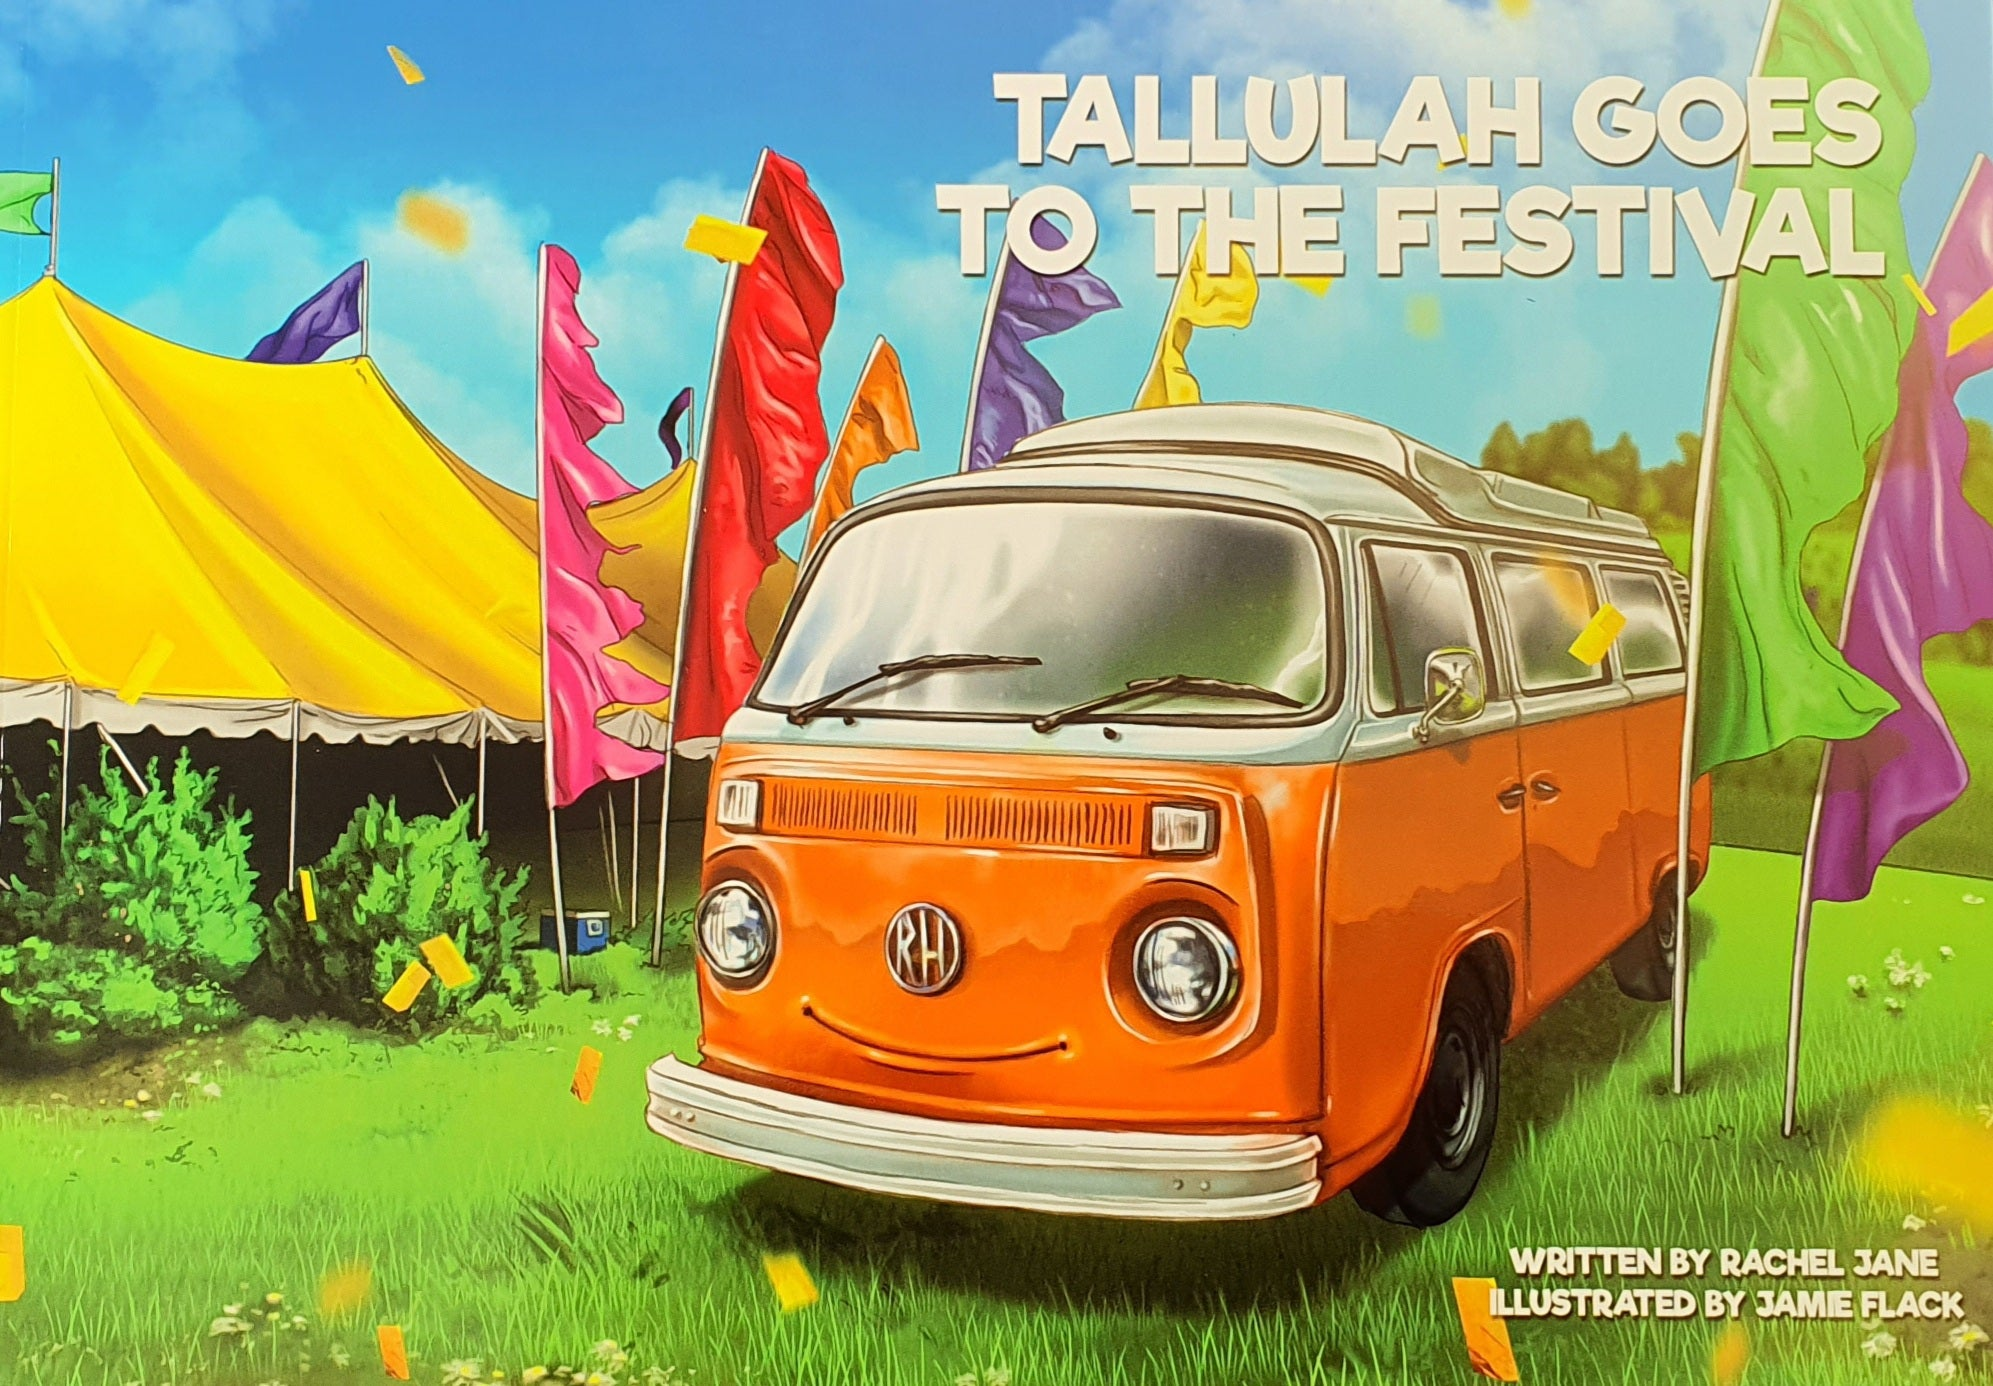 Tallulah Goes to the Festival